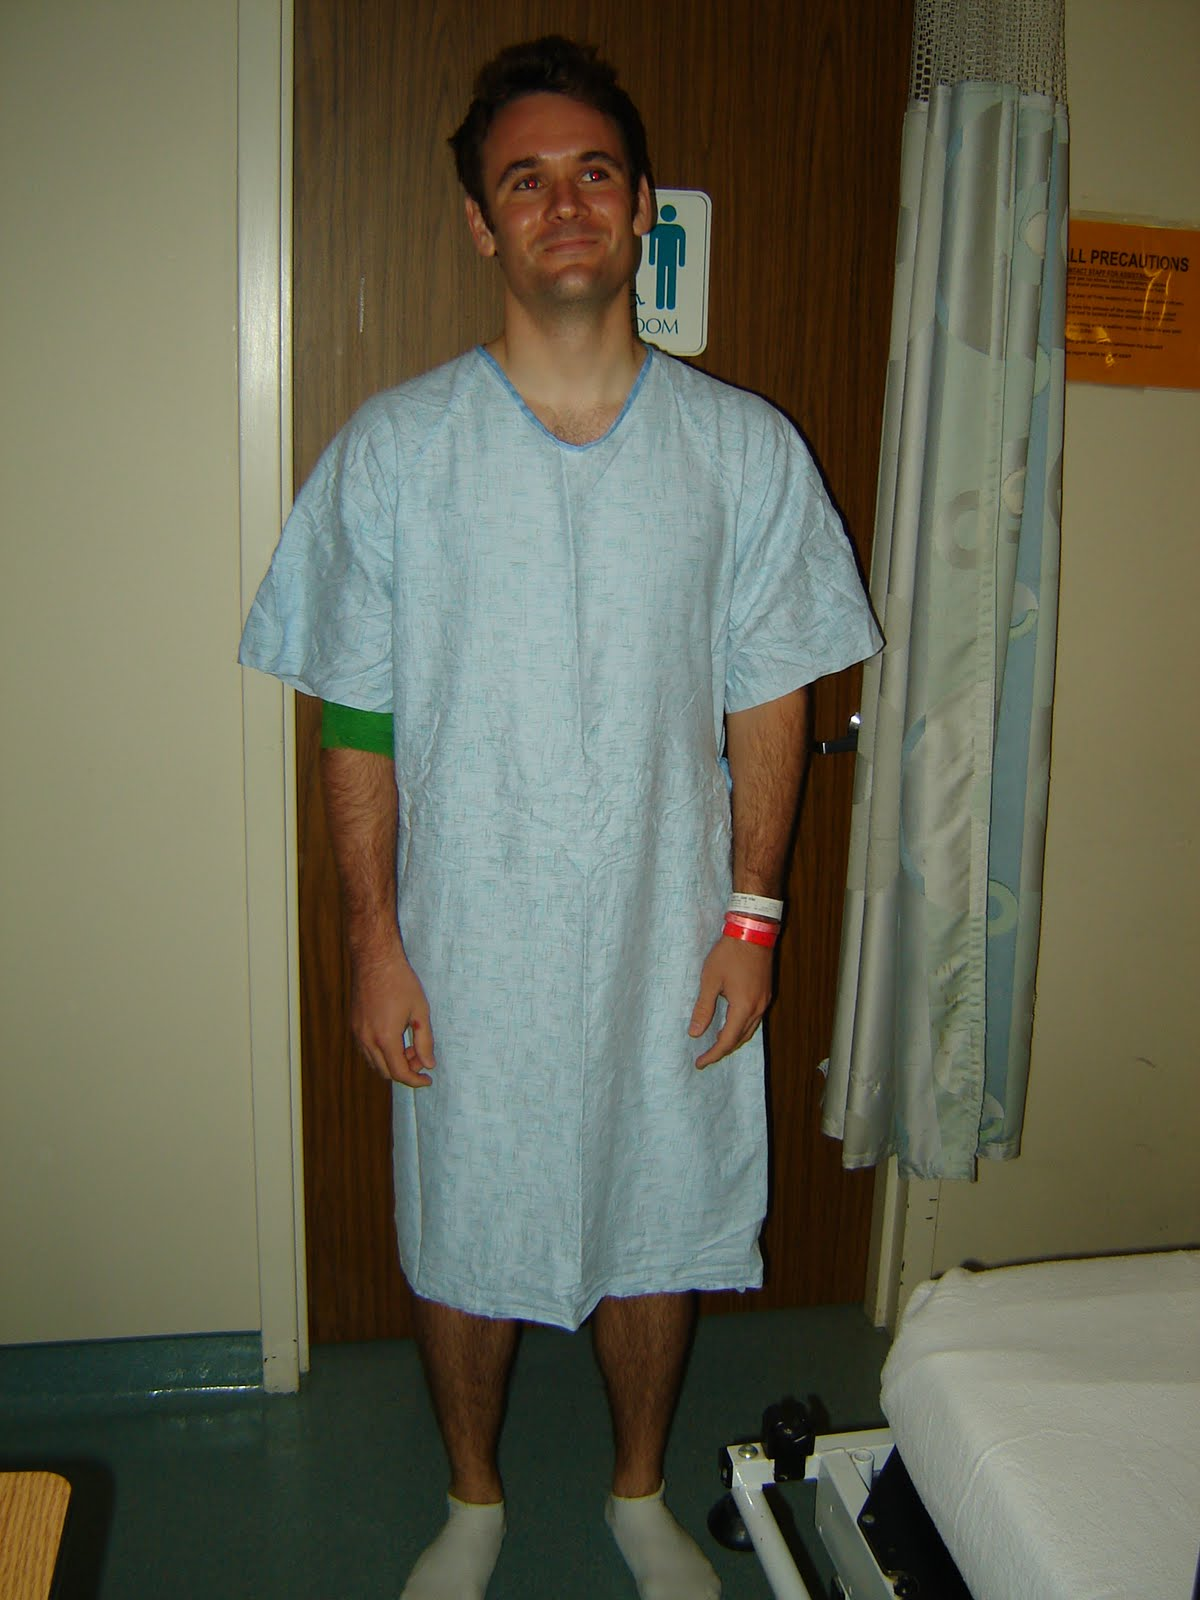 The Sig Life: A Story of Kidneys, Catheters, and Hospital Gowns